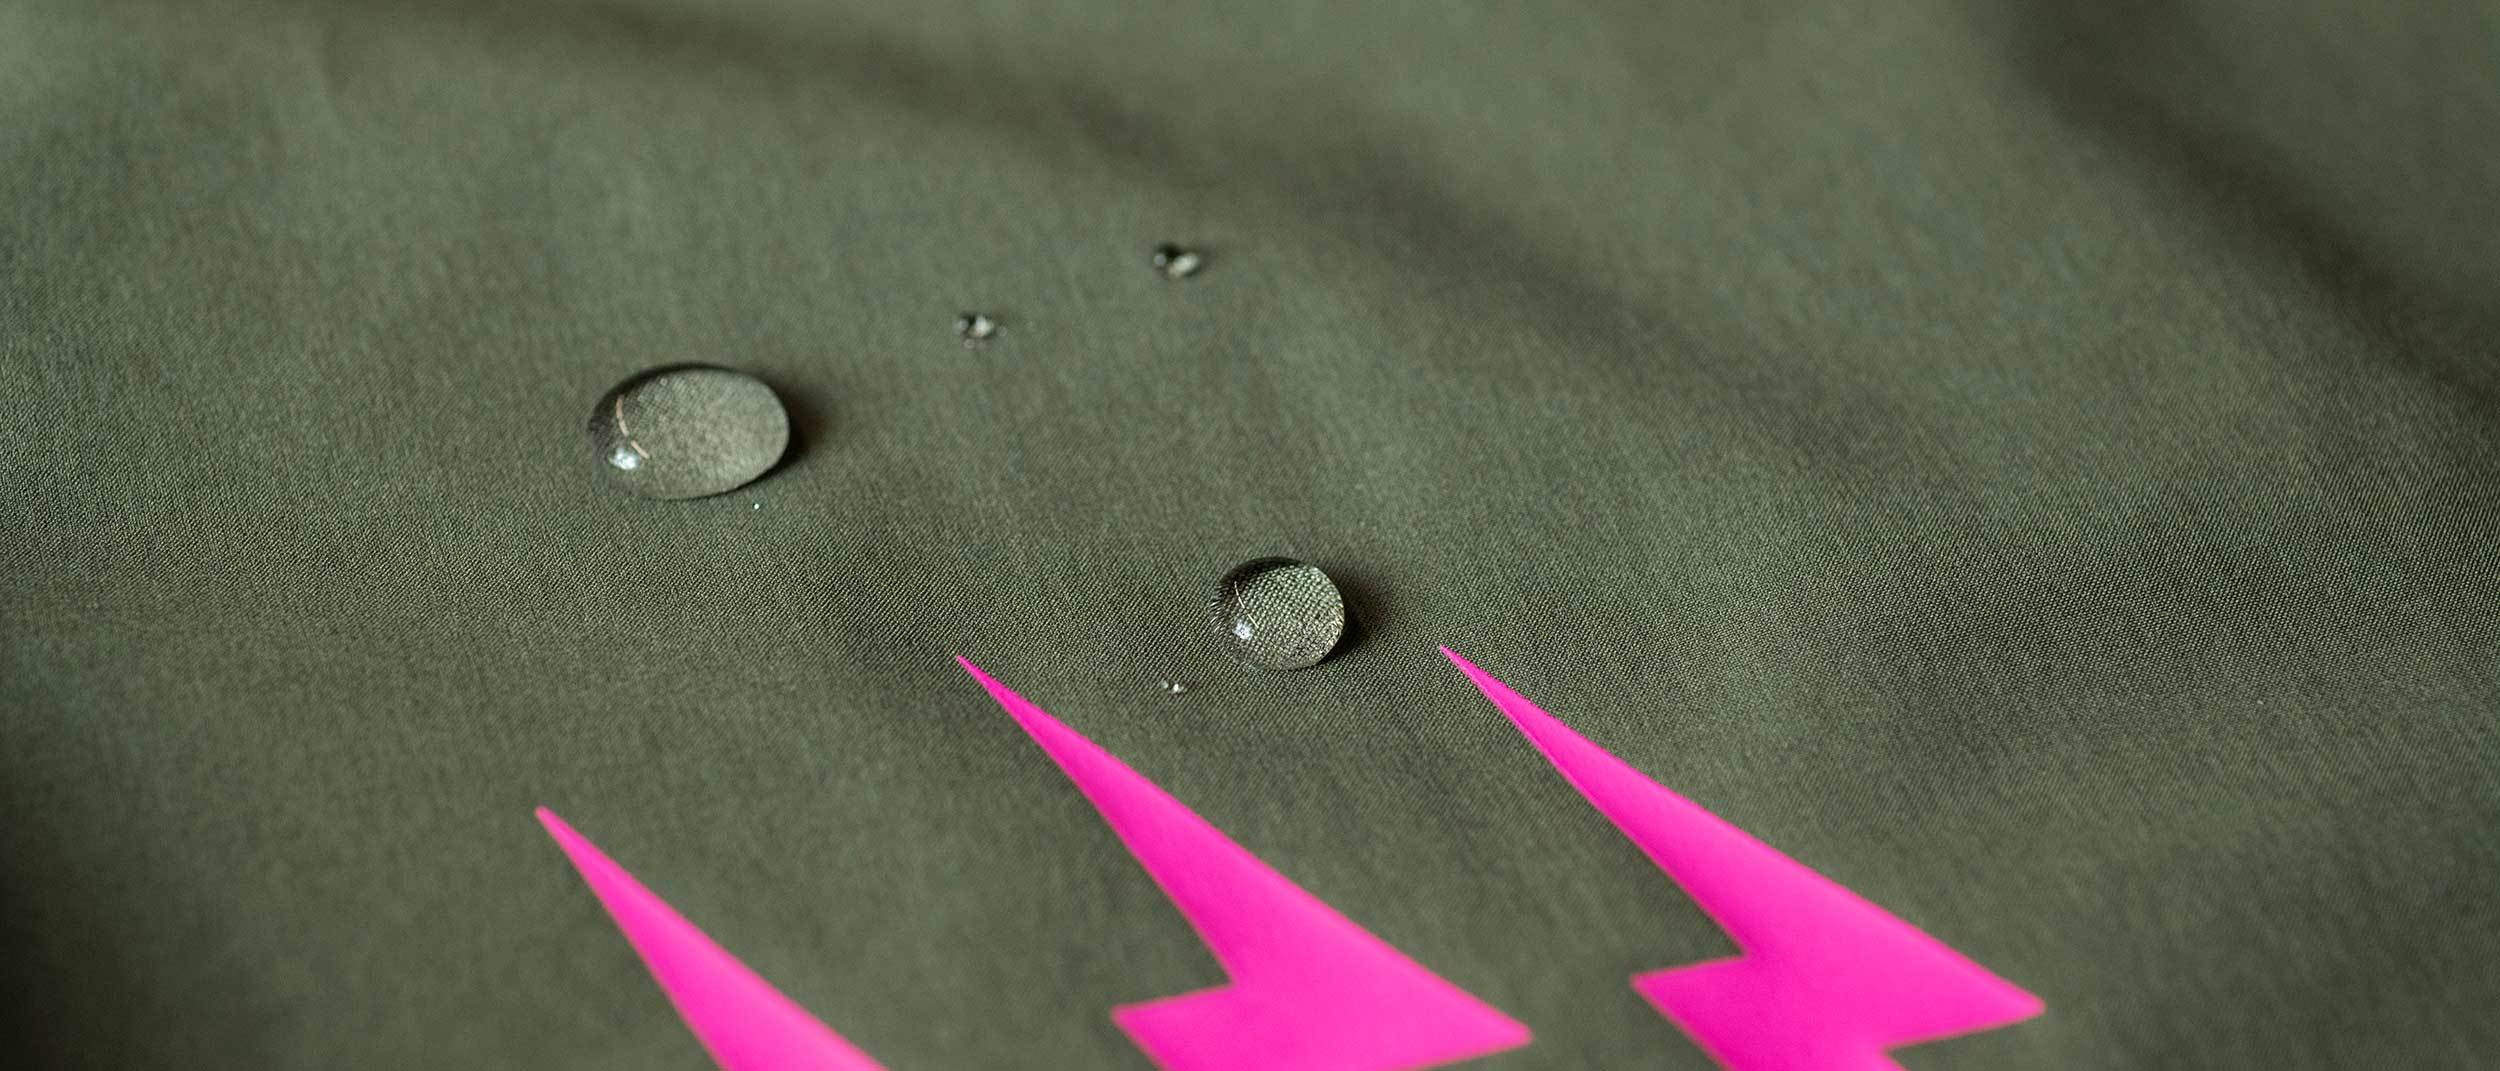 Water droplets near pink bolt logo